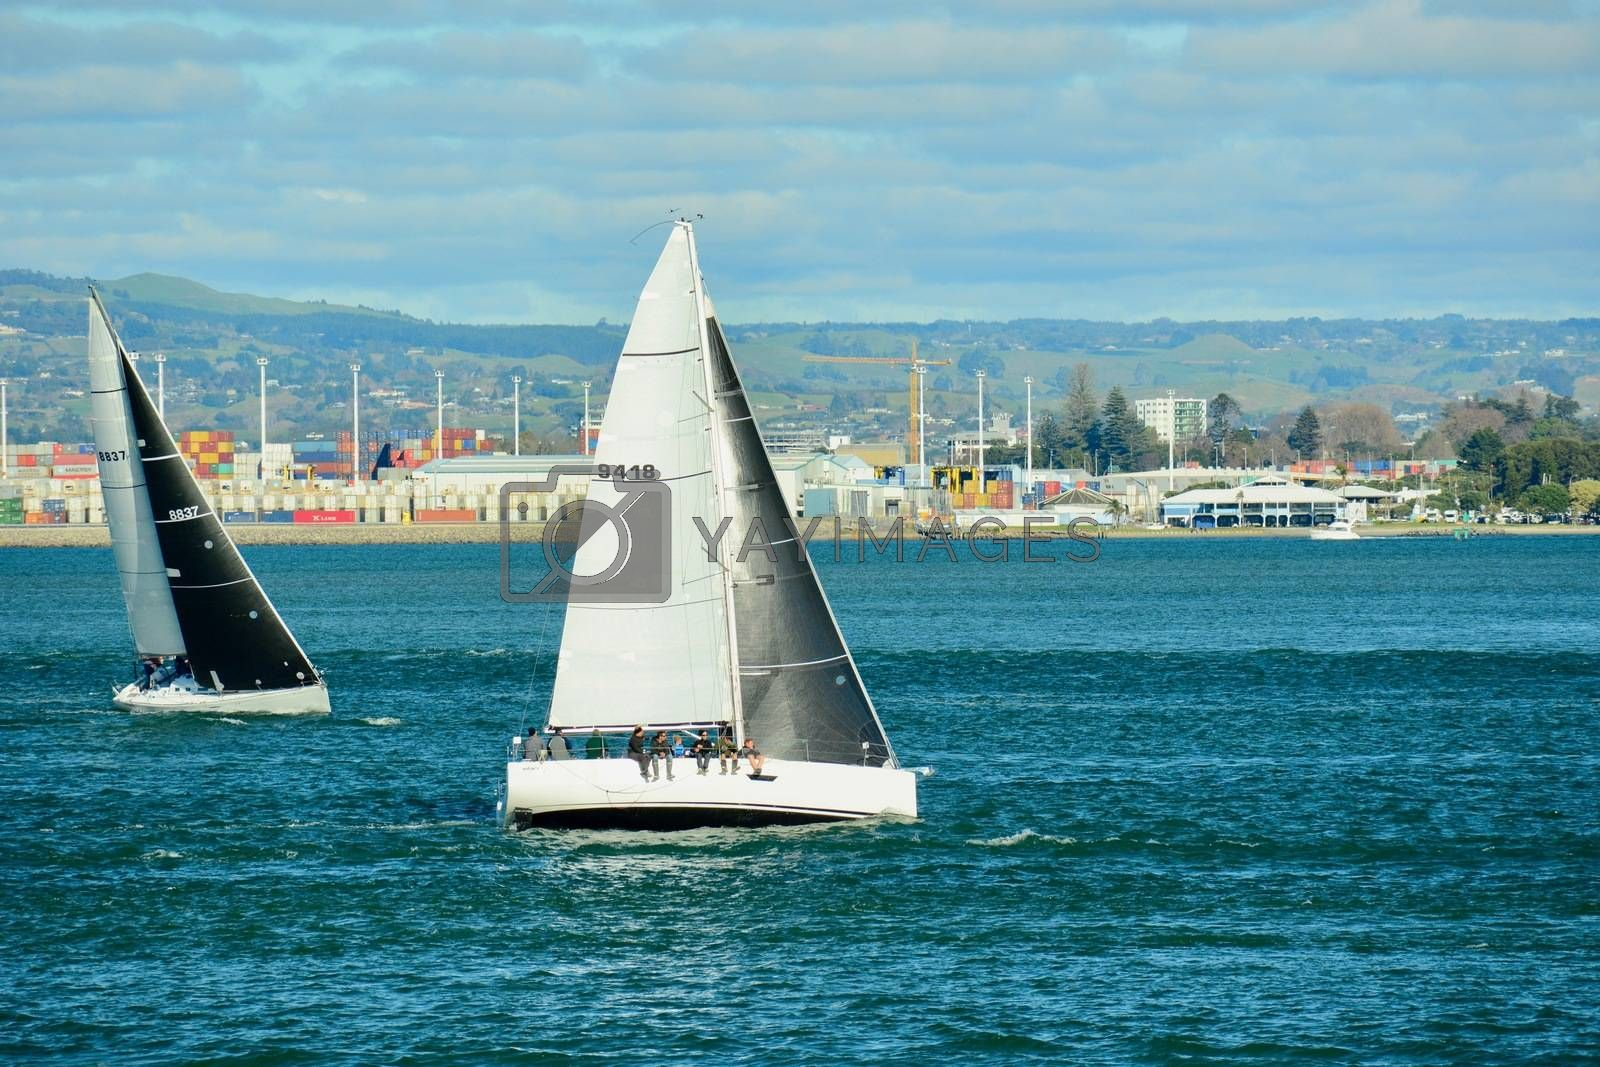 Yacht Club with its enjoyable racing for all boats and crew.